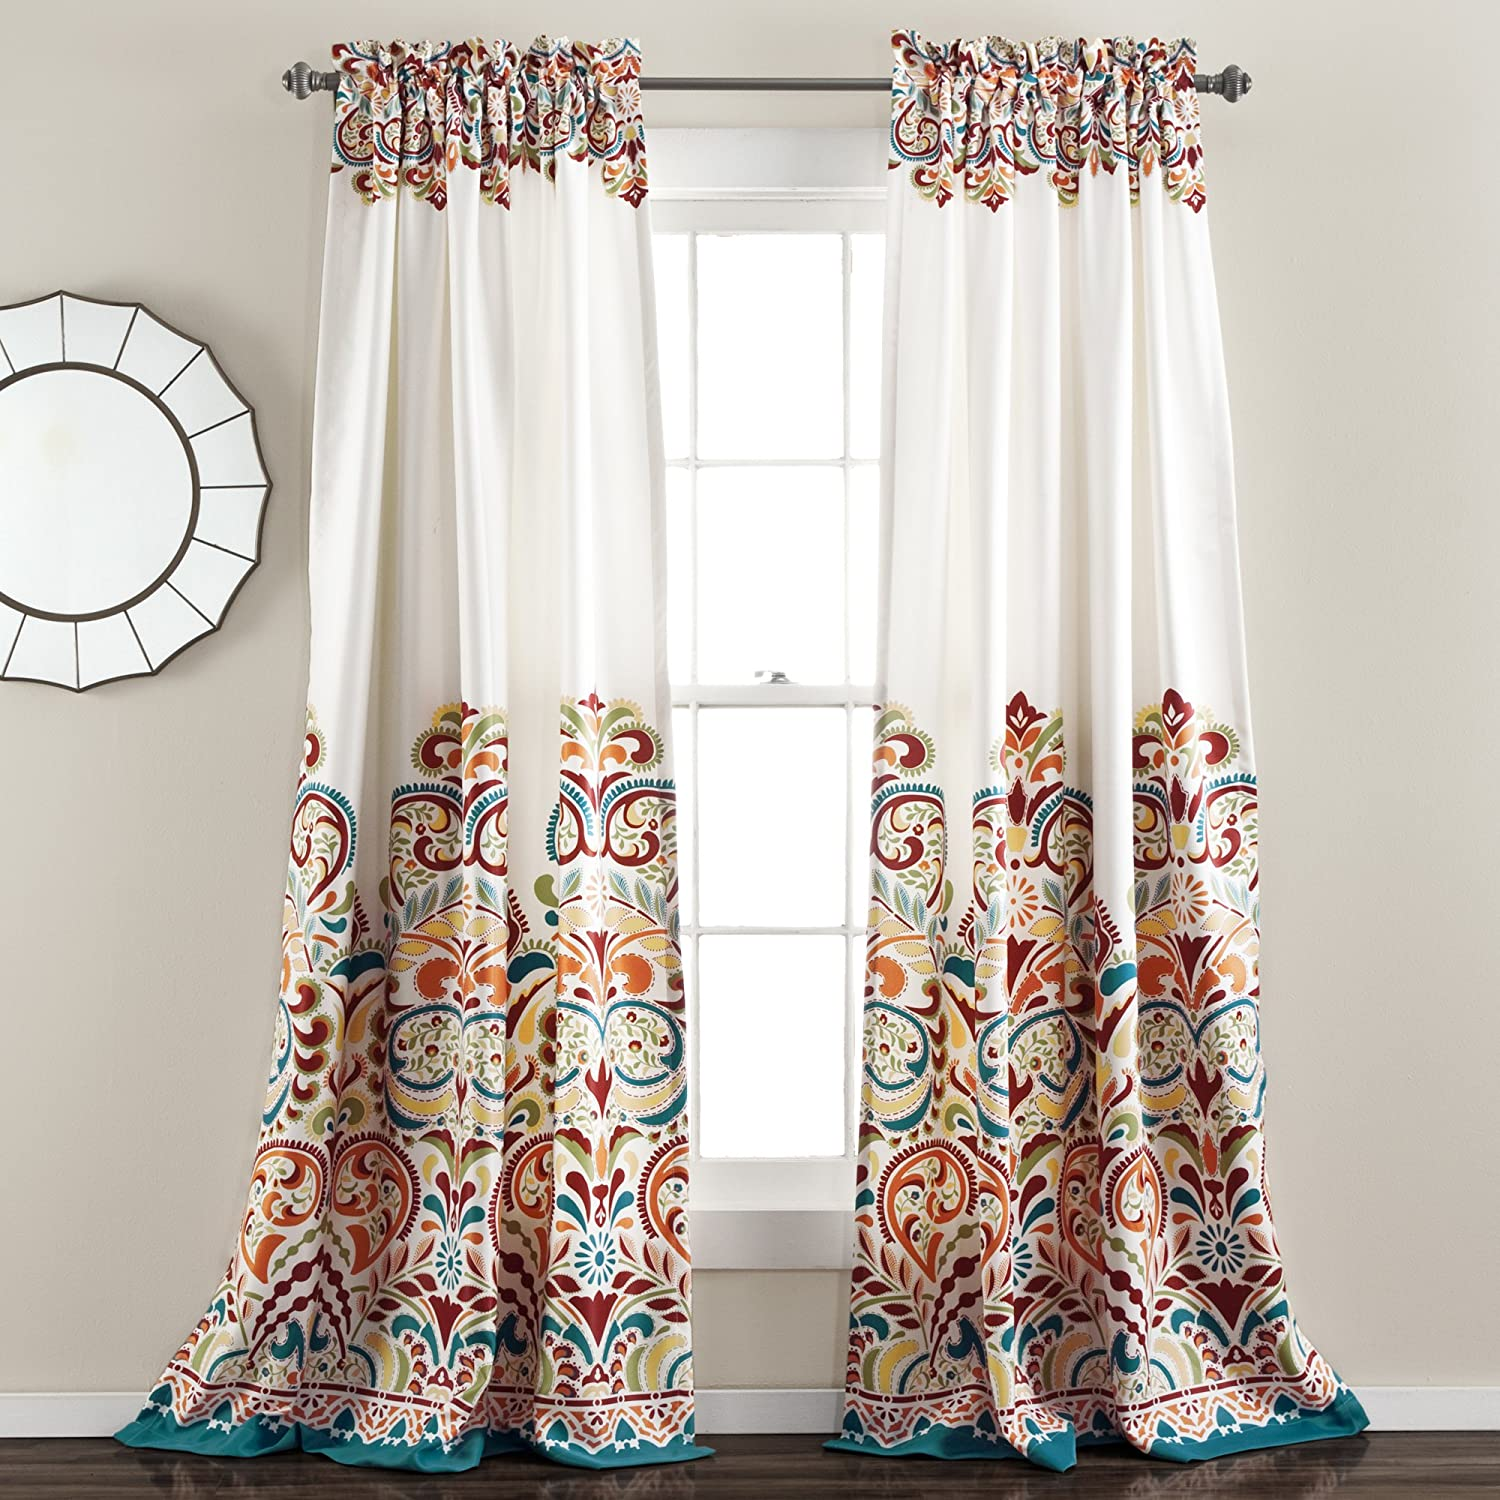 "Lush Decor Clara Curtains Paisley Damask Print Bohemian Style Room Darkening Window Panel Set for Living, Dining, Bedroom (Pair), 84"" x 52"", Turquiose & Tangerine"